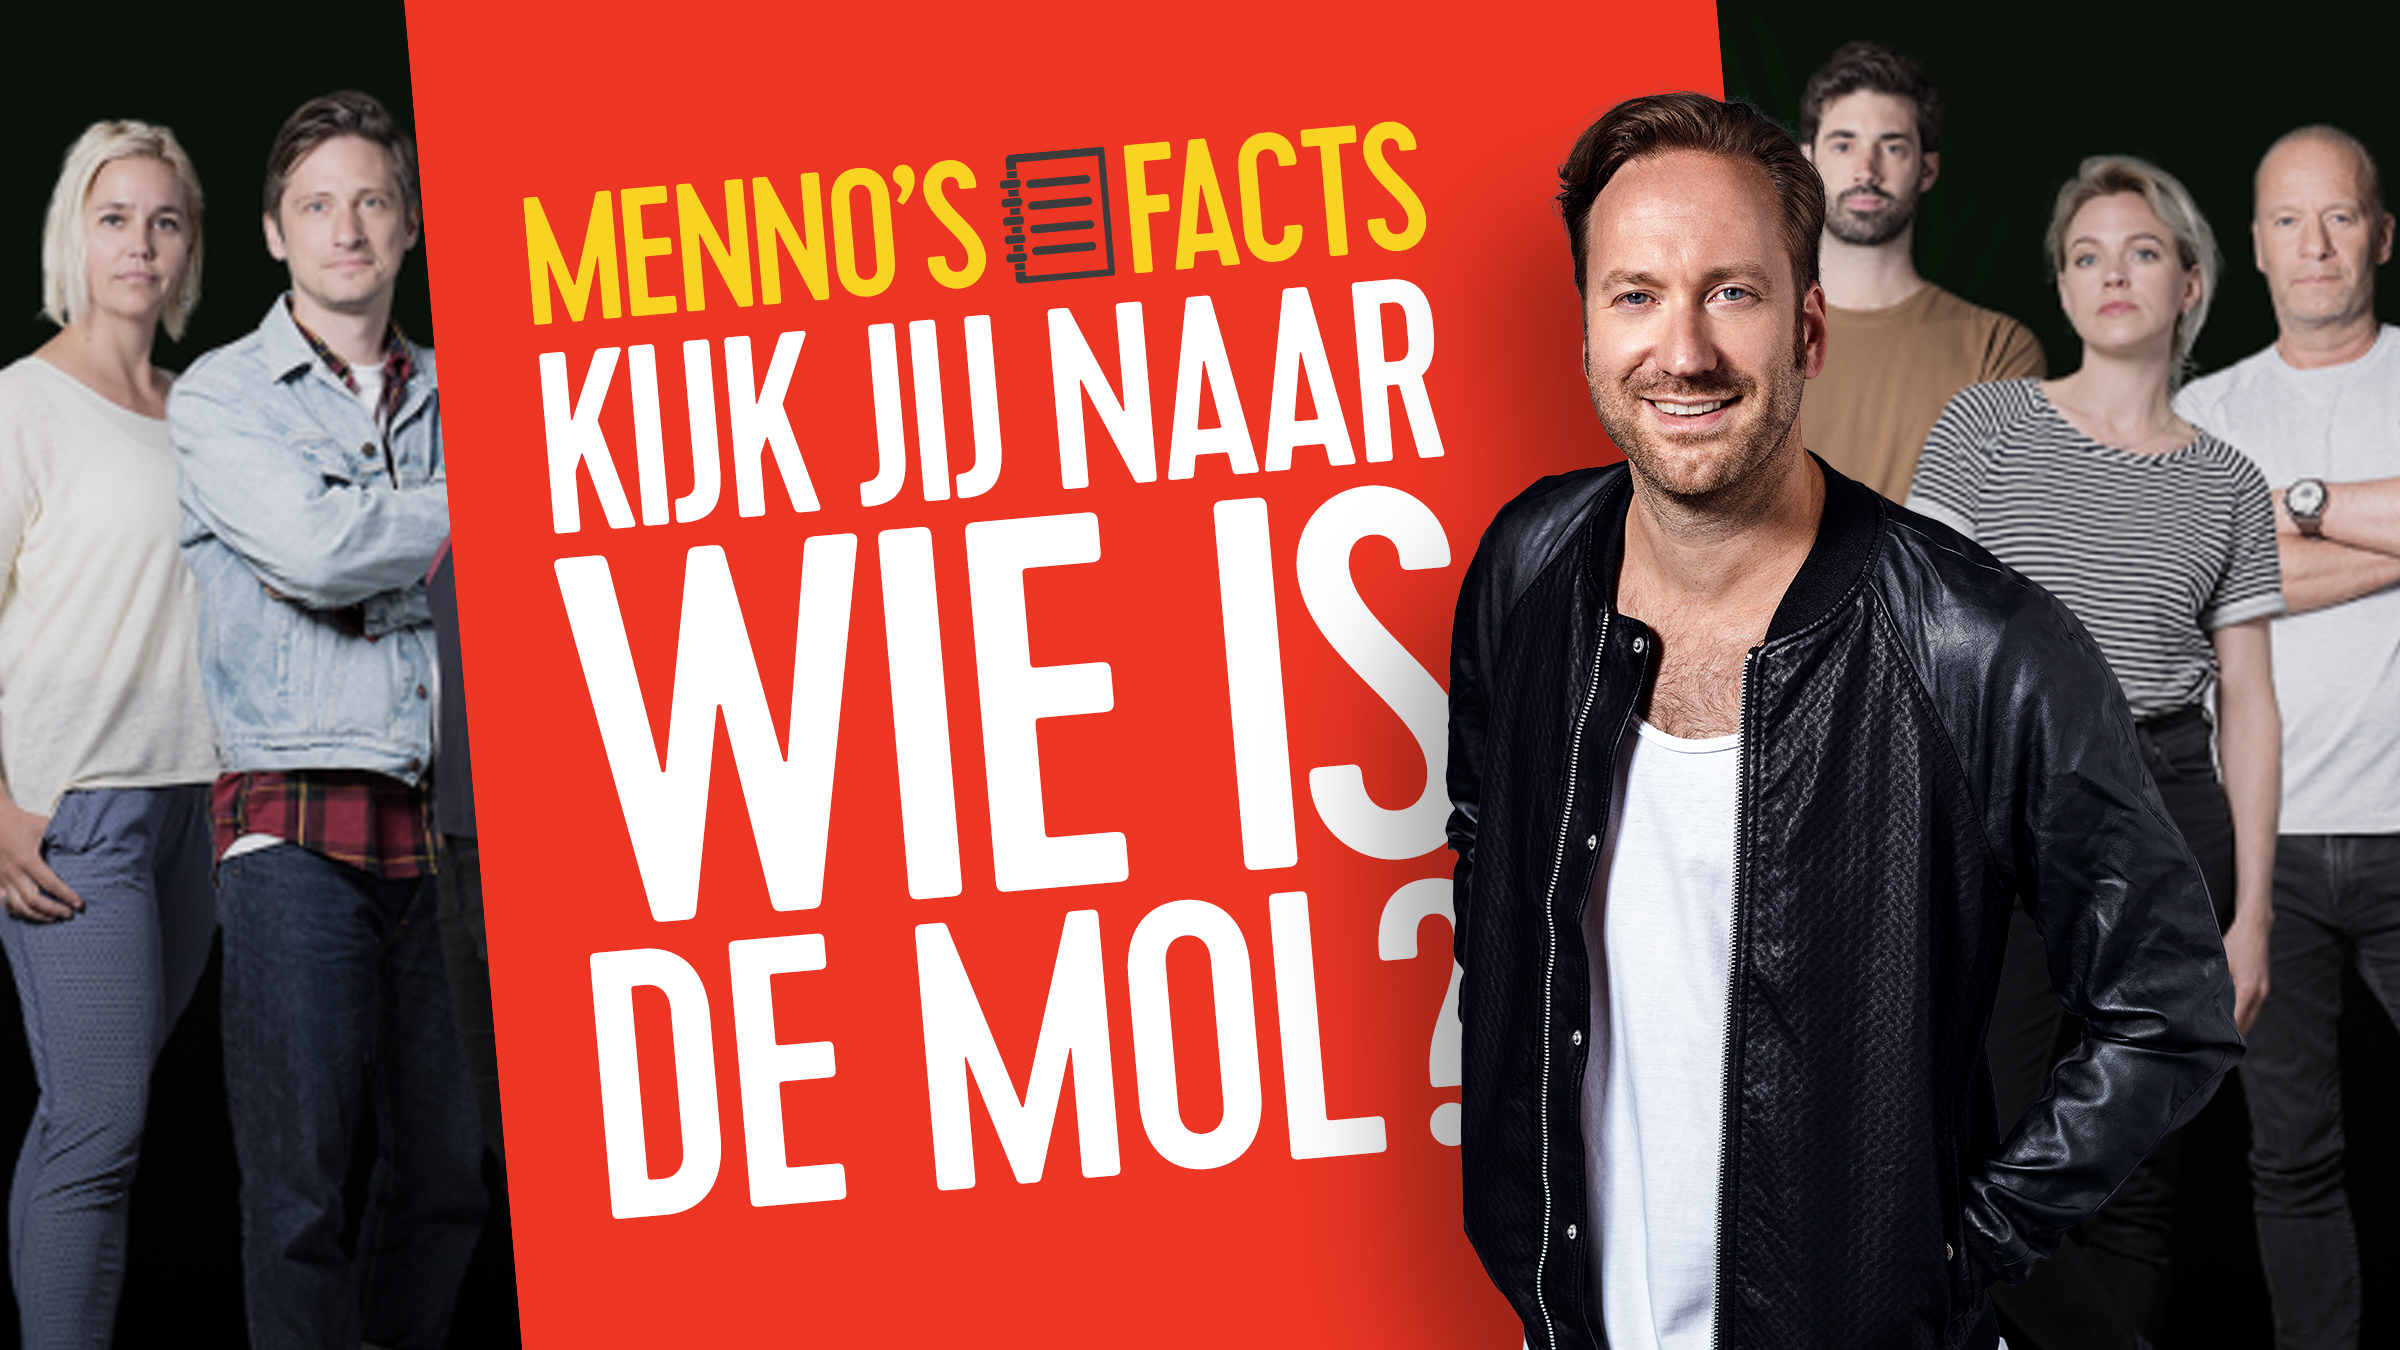 Demol teaser basis mennosfacts17